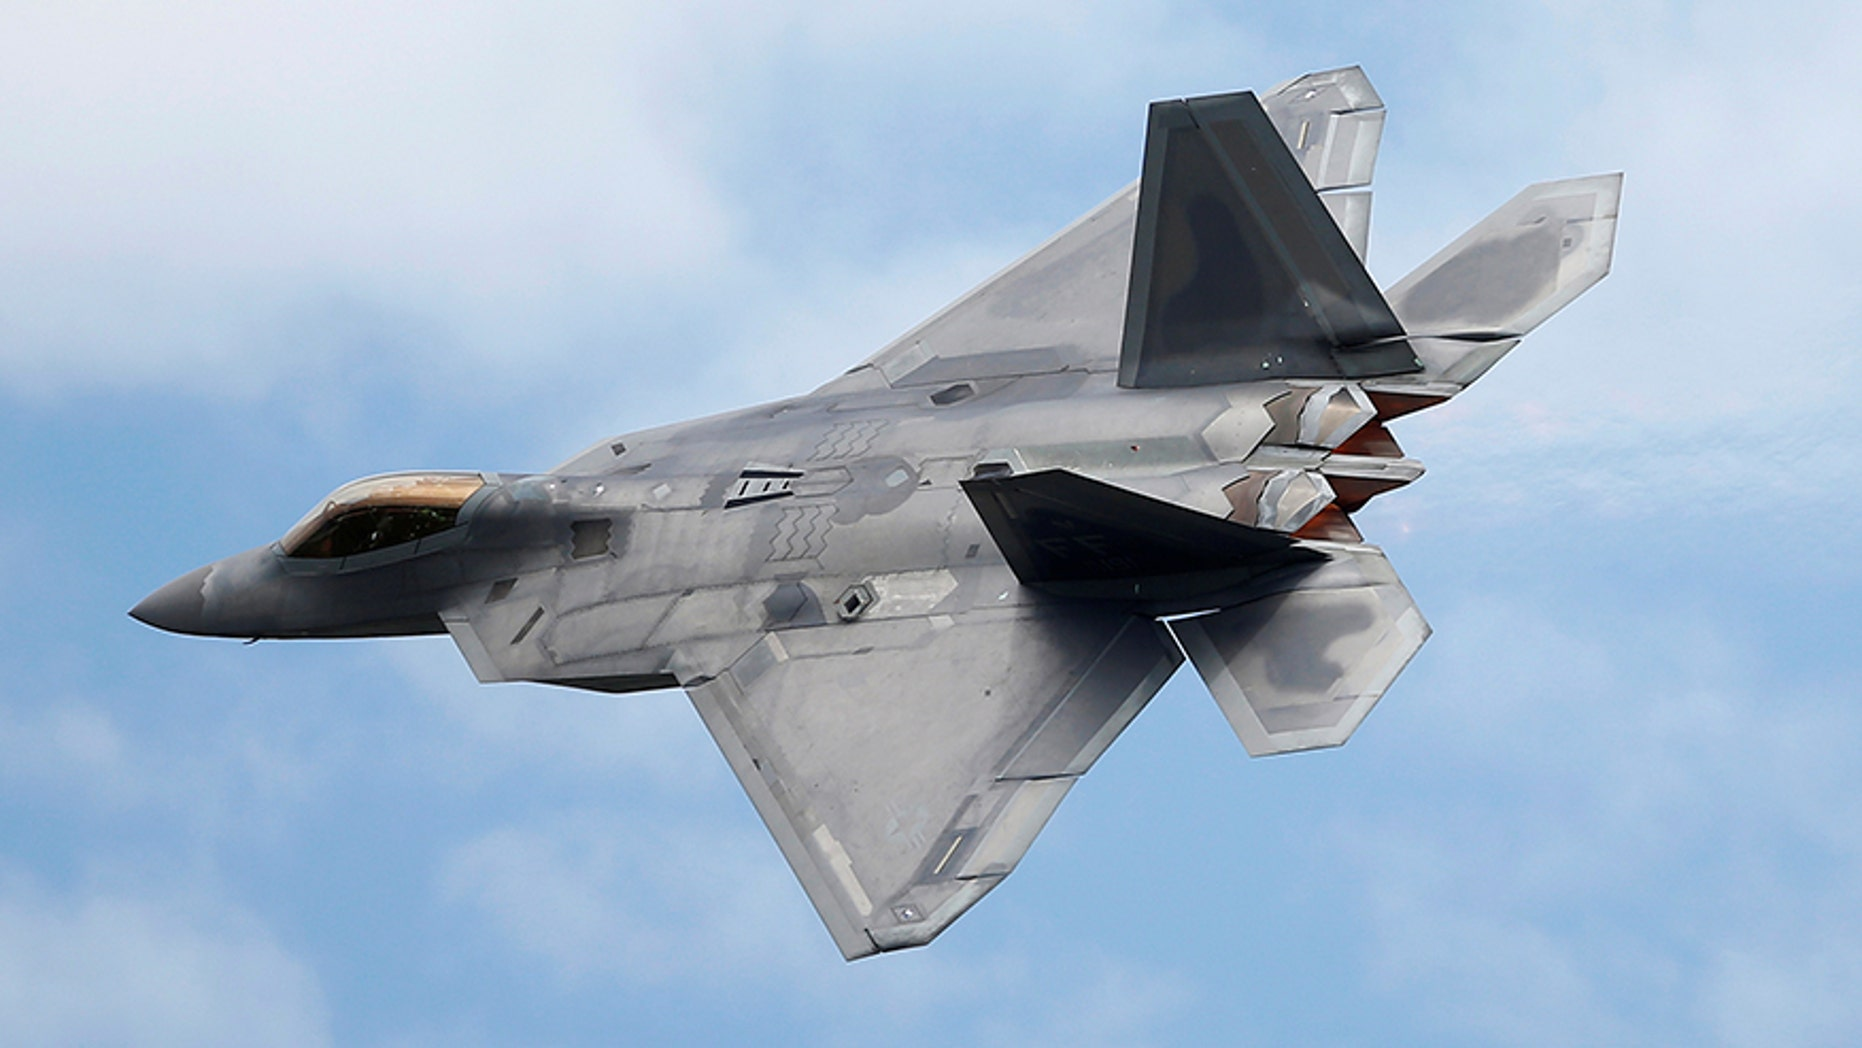 July 8, 2016: A Lockheed Martin F-22 Raptor fighter turns during a flying display in Fairford, Britain.